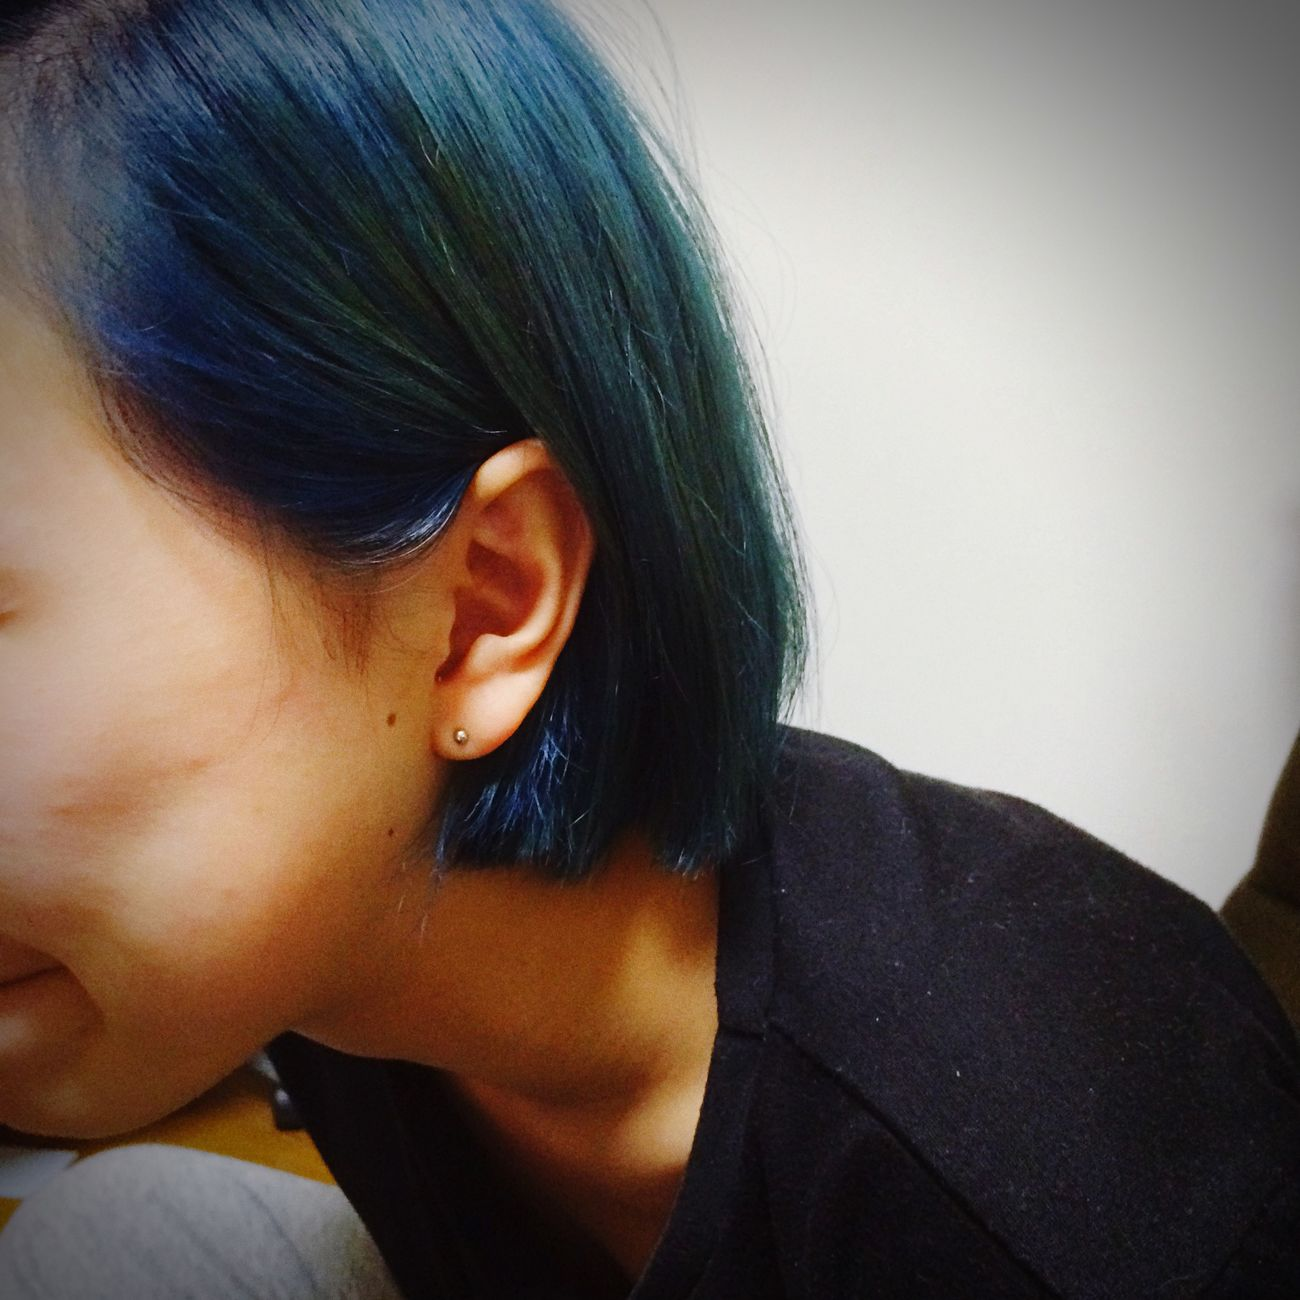 Blue Hairstyle Bobhaircut Cute